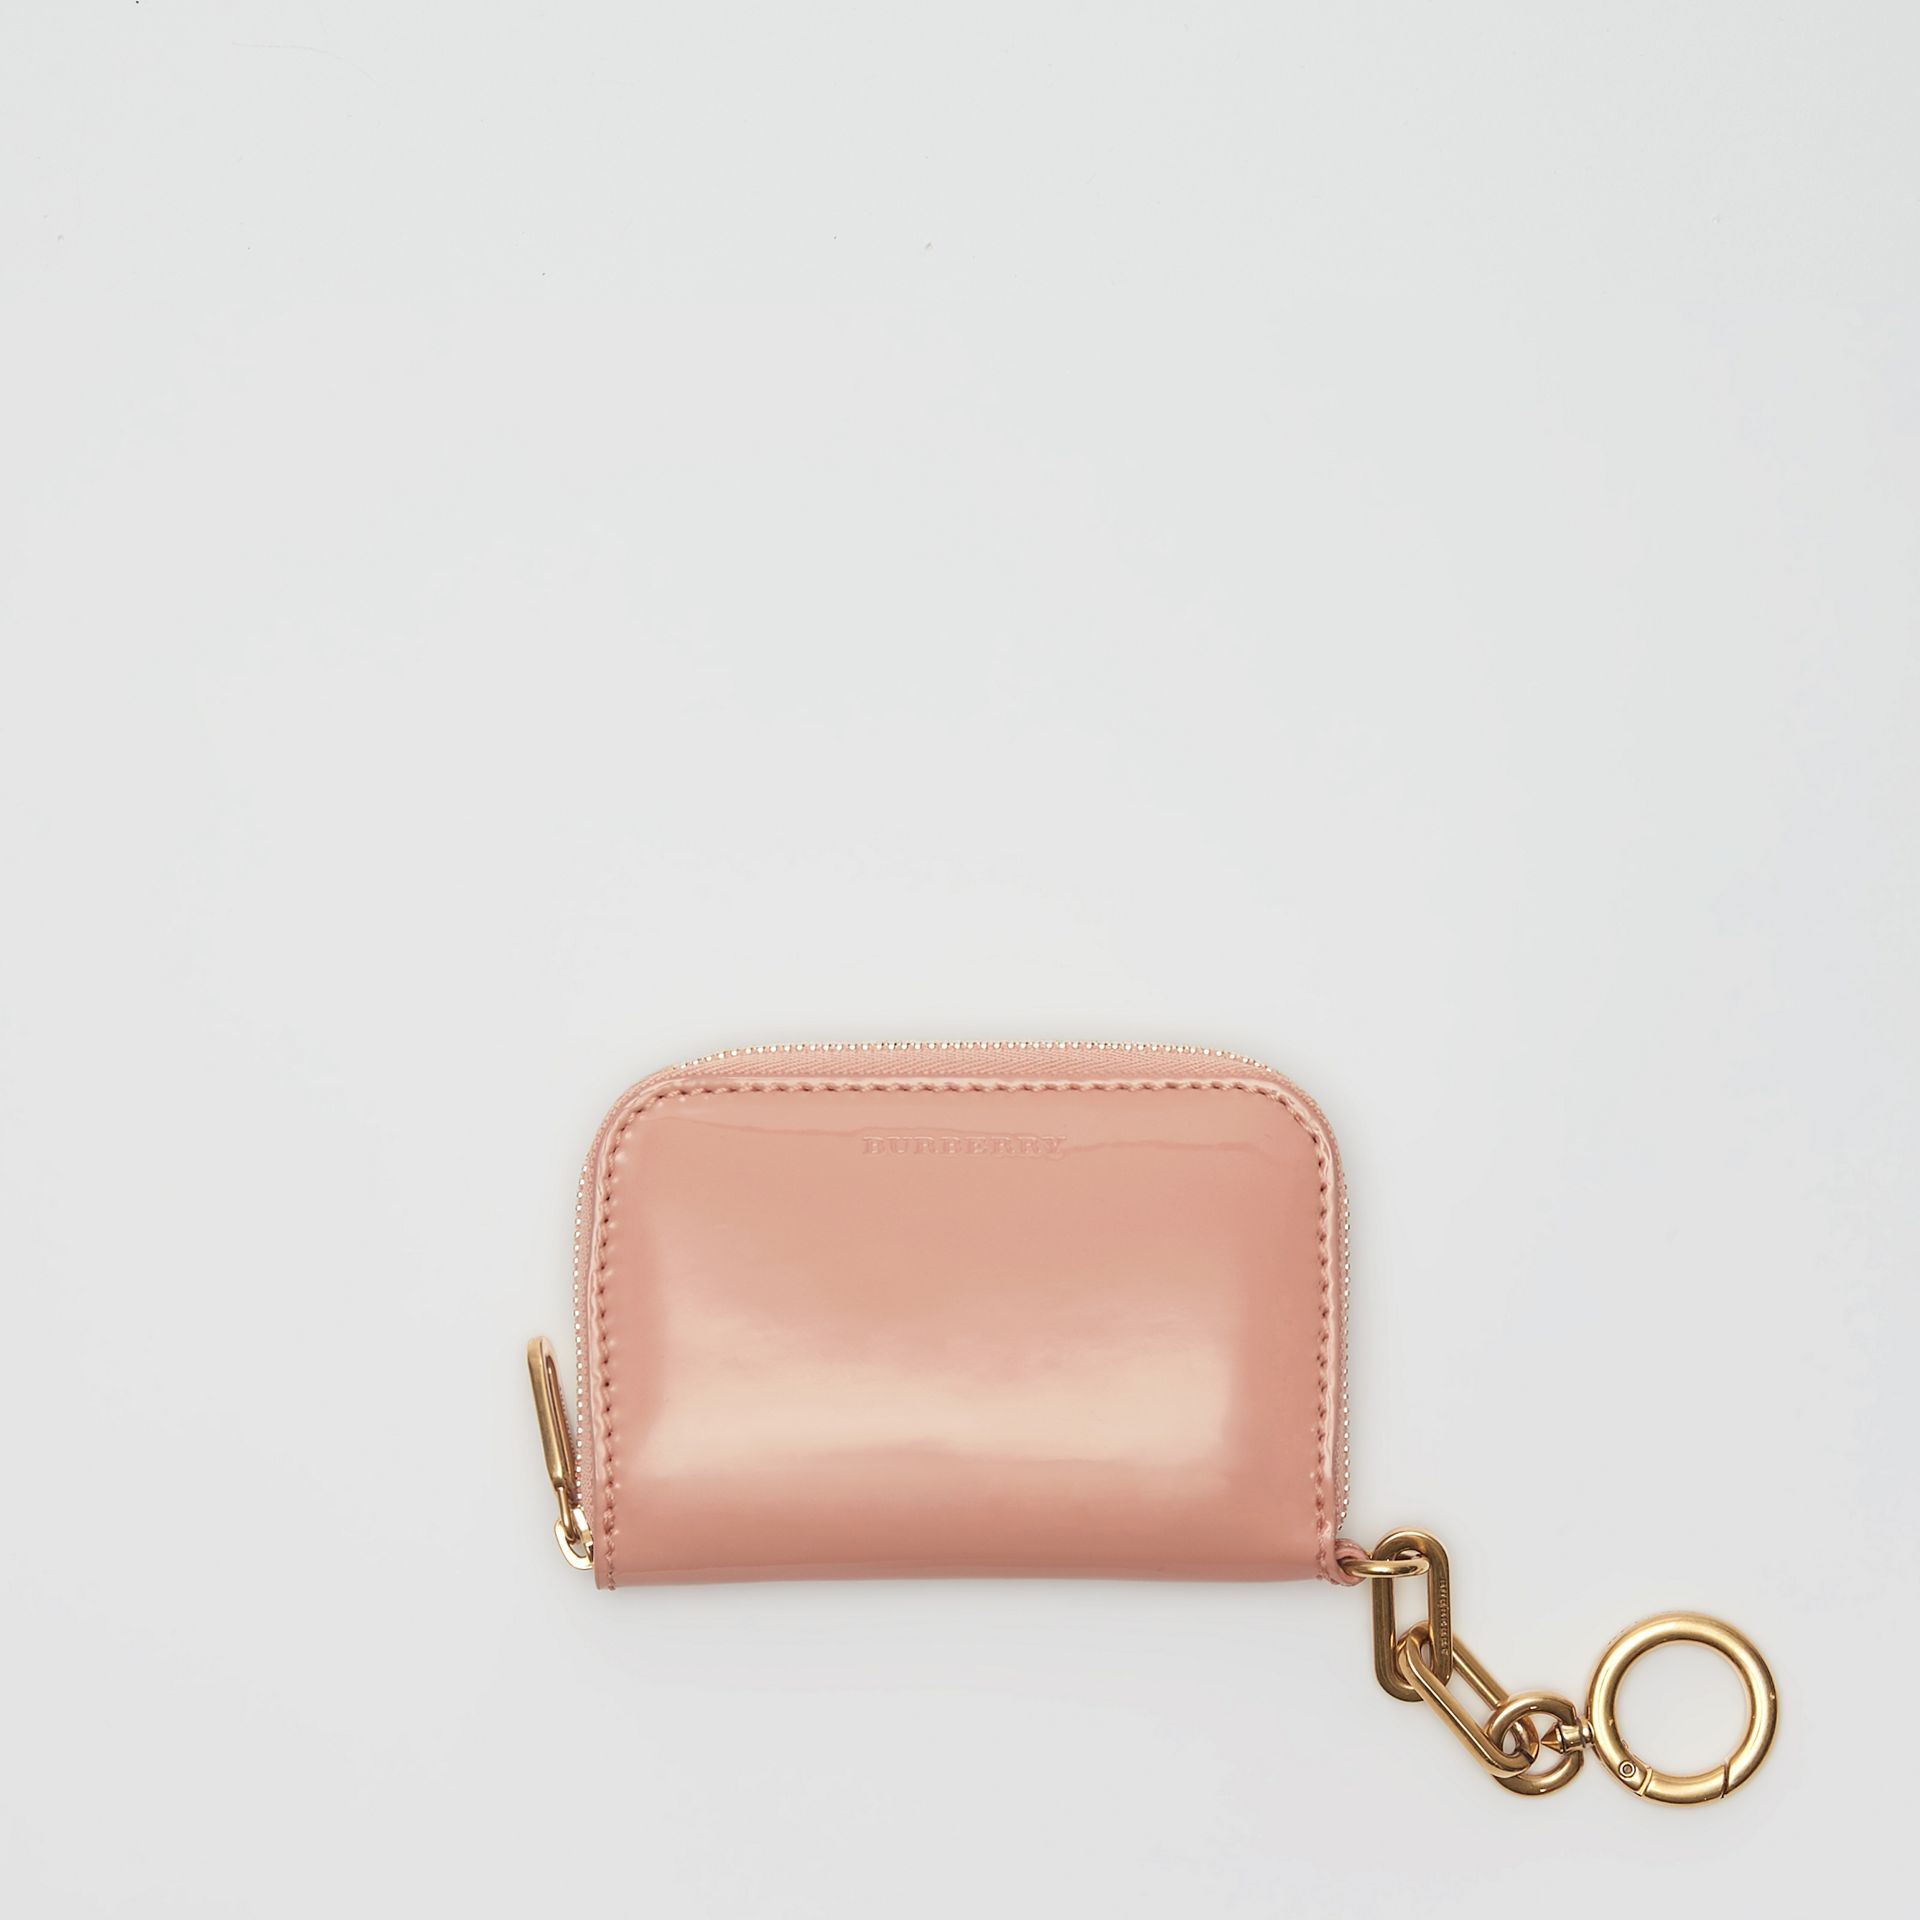 Link Detail Patent Leather Ziparound Wallet in Pale Fawn Pink - Women | Burberry - gallery image 2